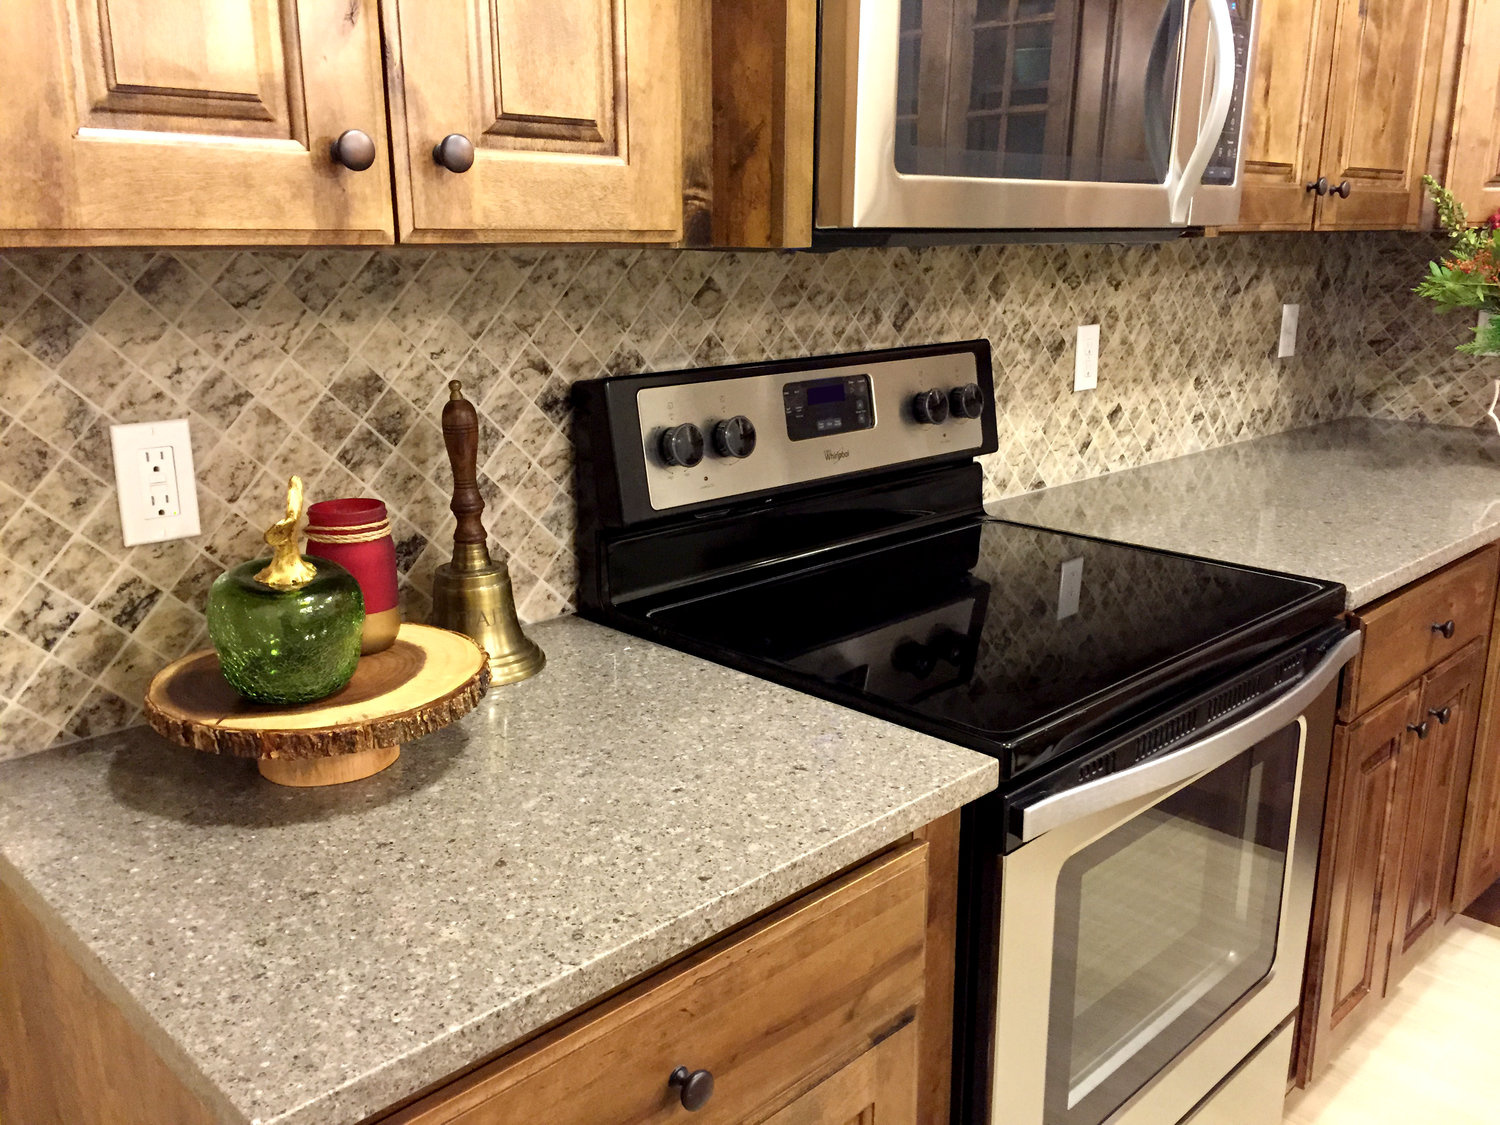 21st Century Marble Amp Granite Inc In Pensacola Fl Is A